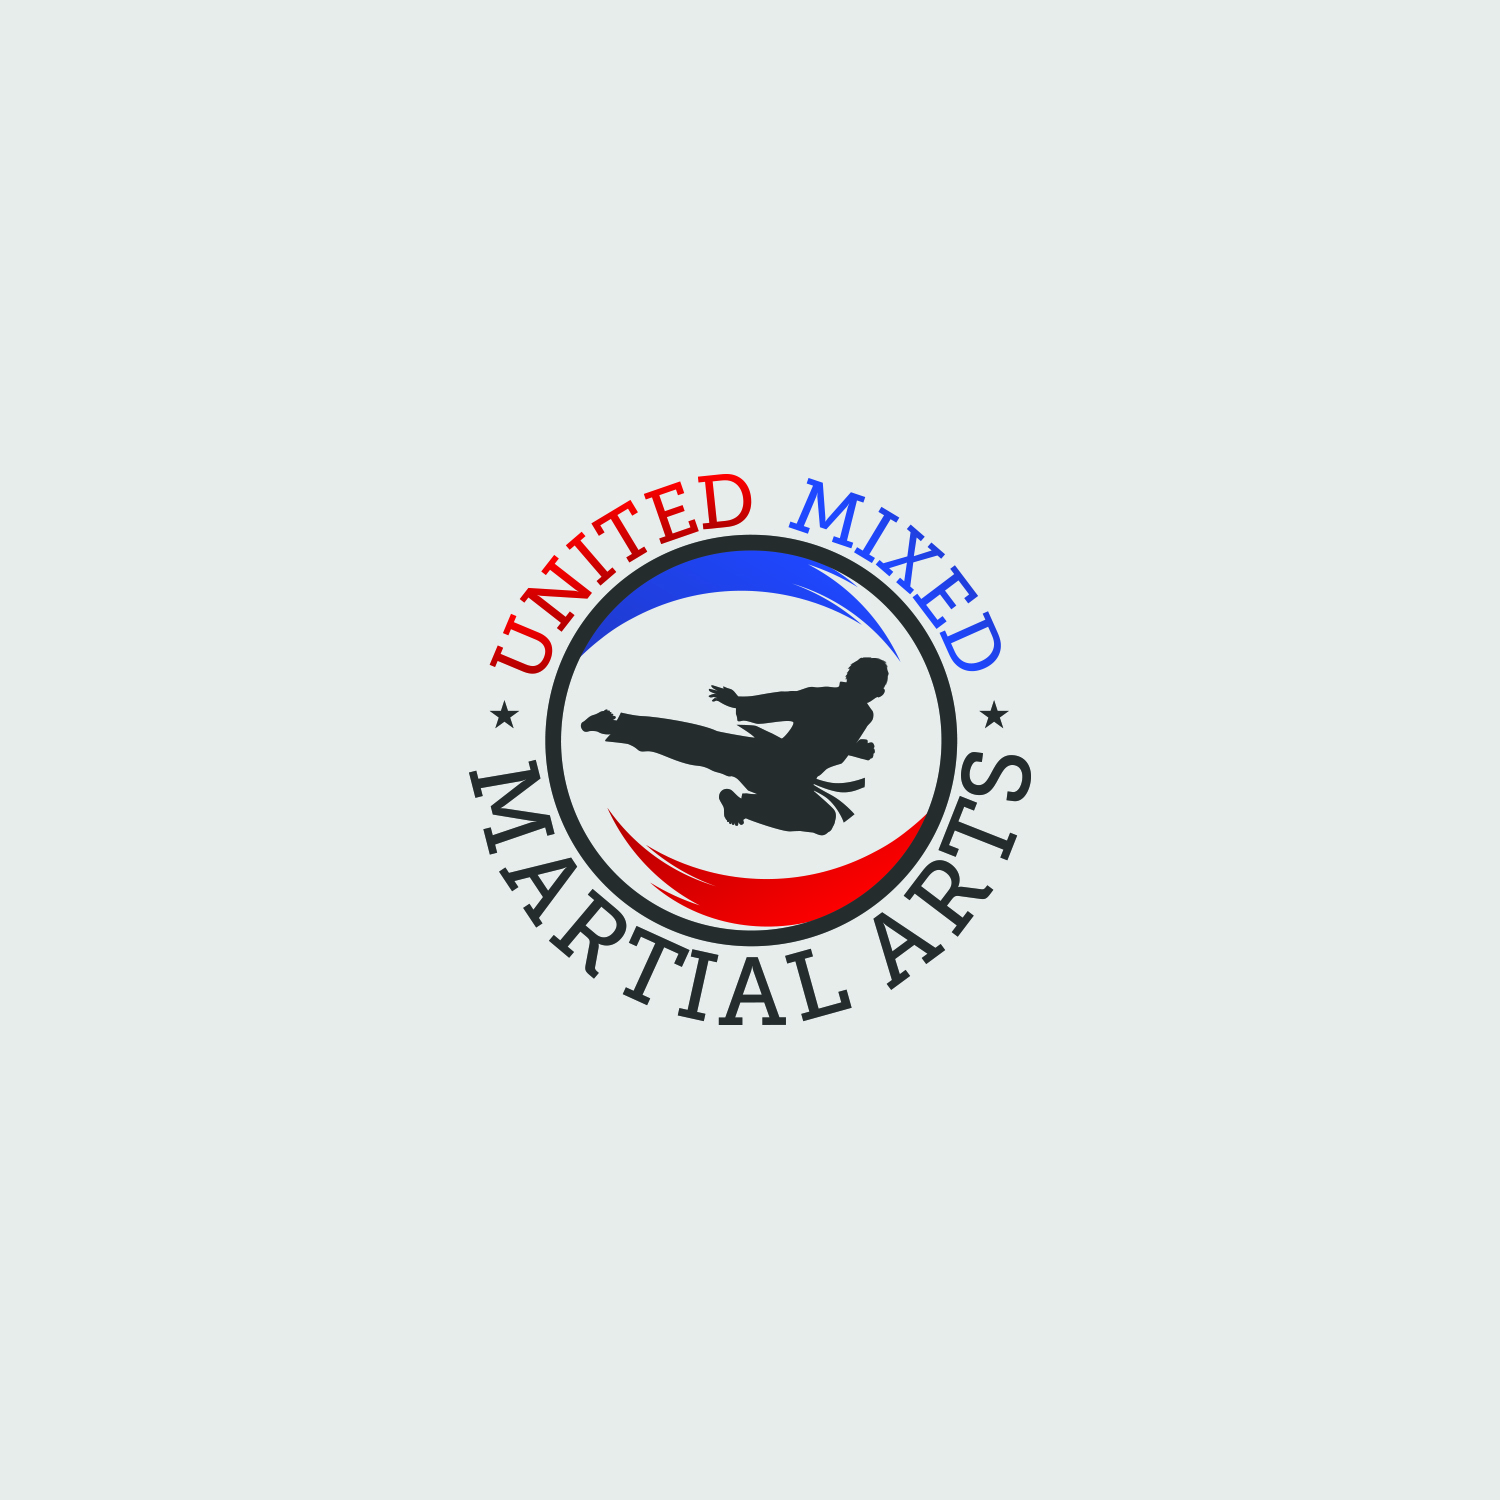 Logo Design by Umair ahmed Iqbal - Entry No. 78 in the Logo Design Contest Artistic Logo Design for United Mixed Martial Arts Ltd..